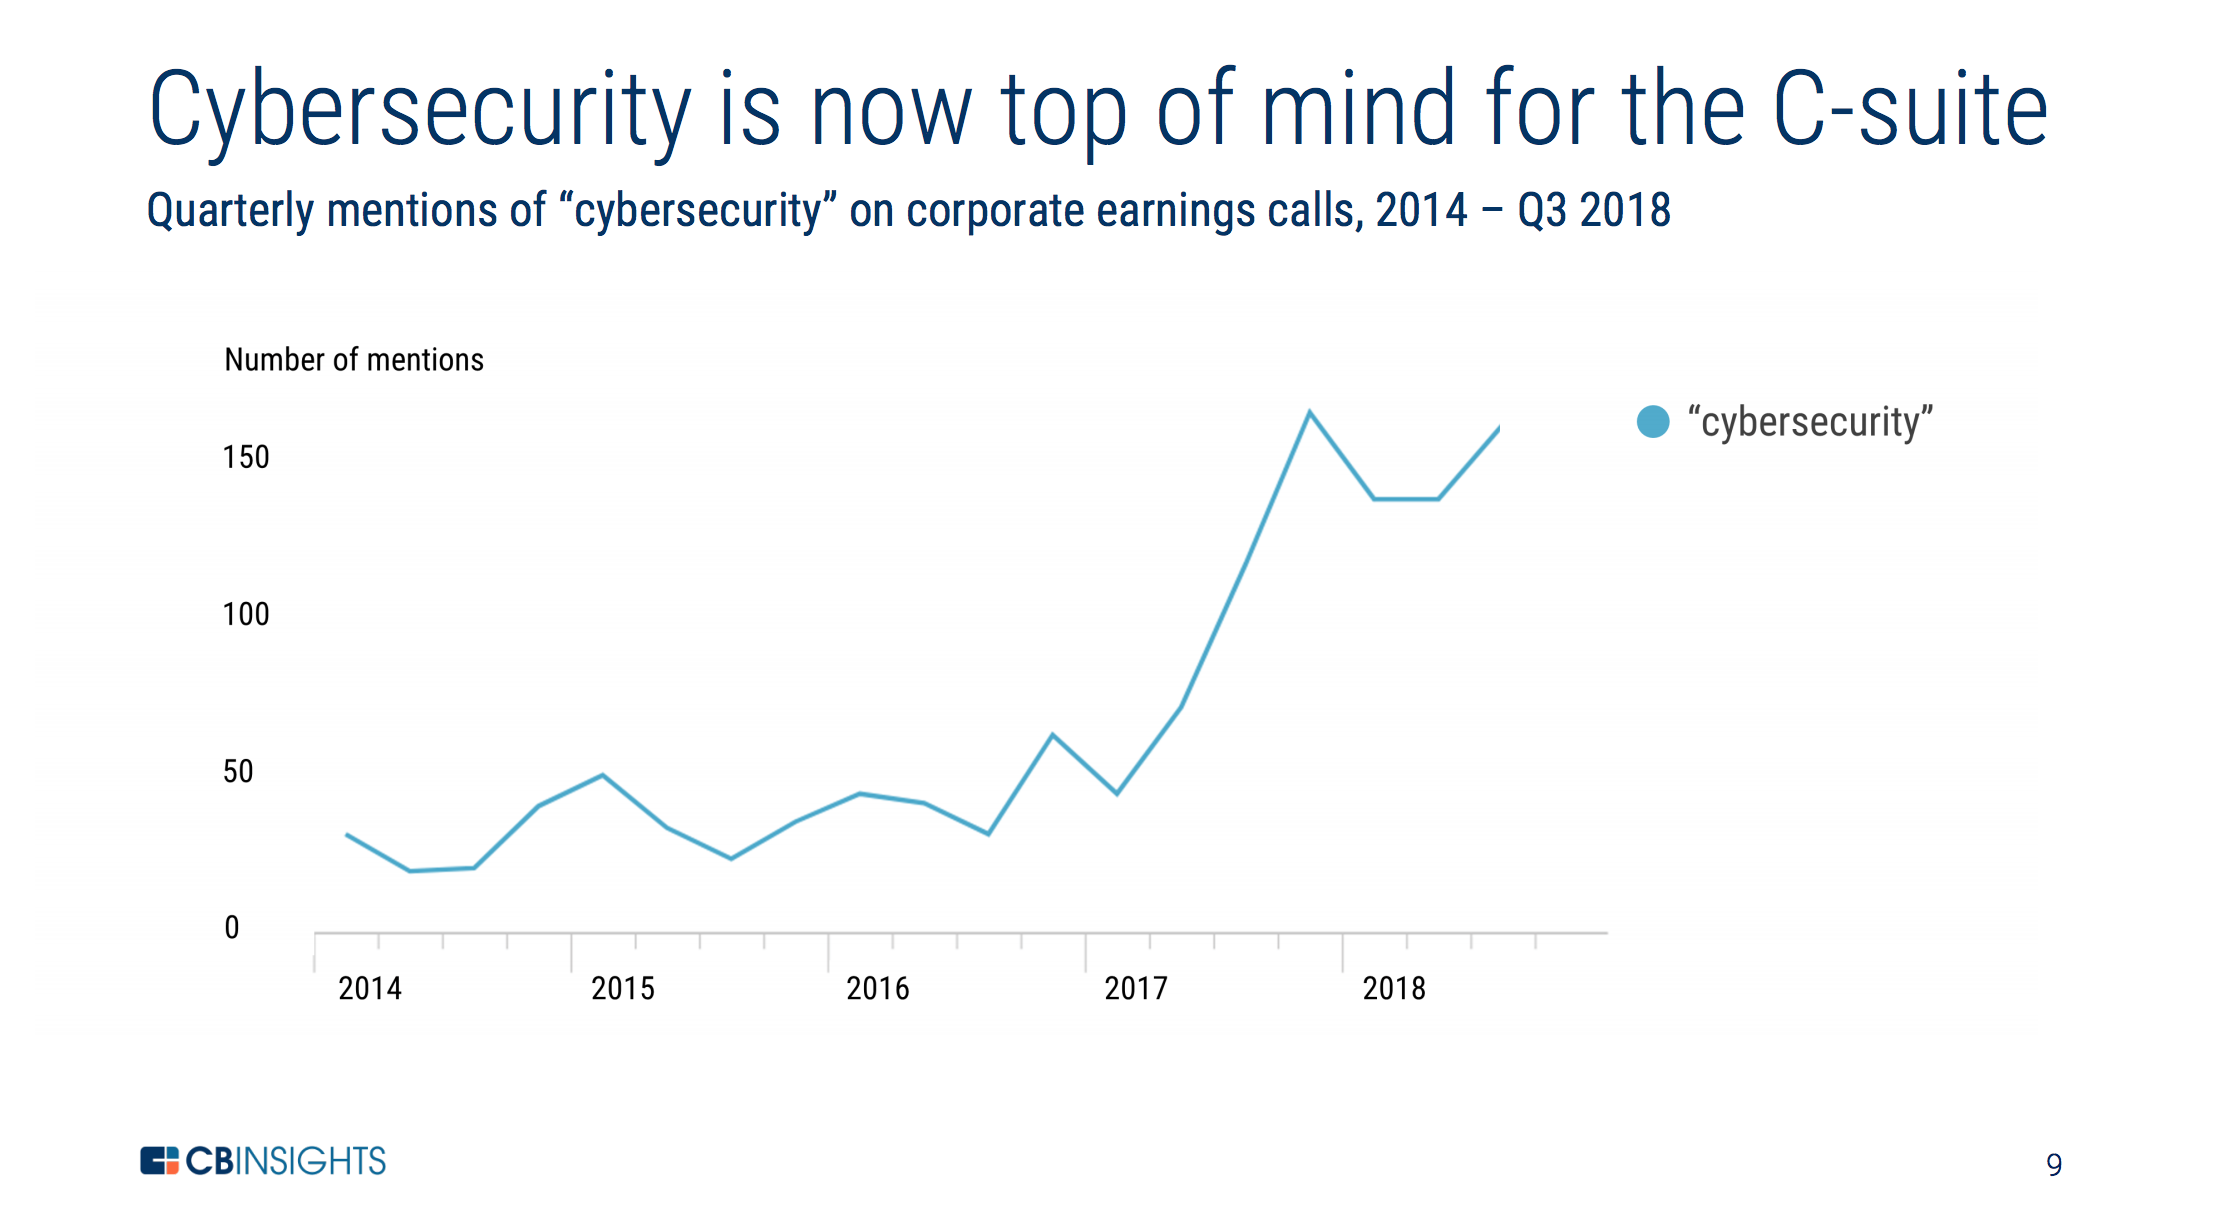 cybersecurity is trending up in quarterly c-suite calls